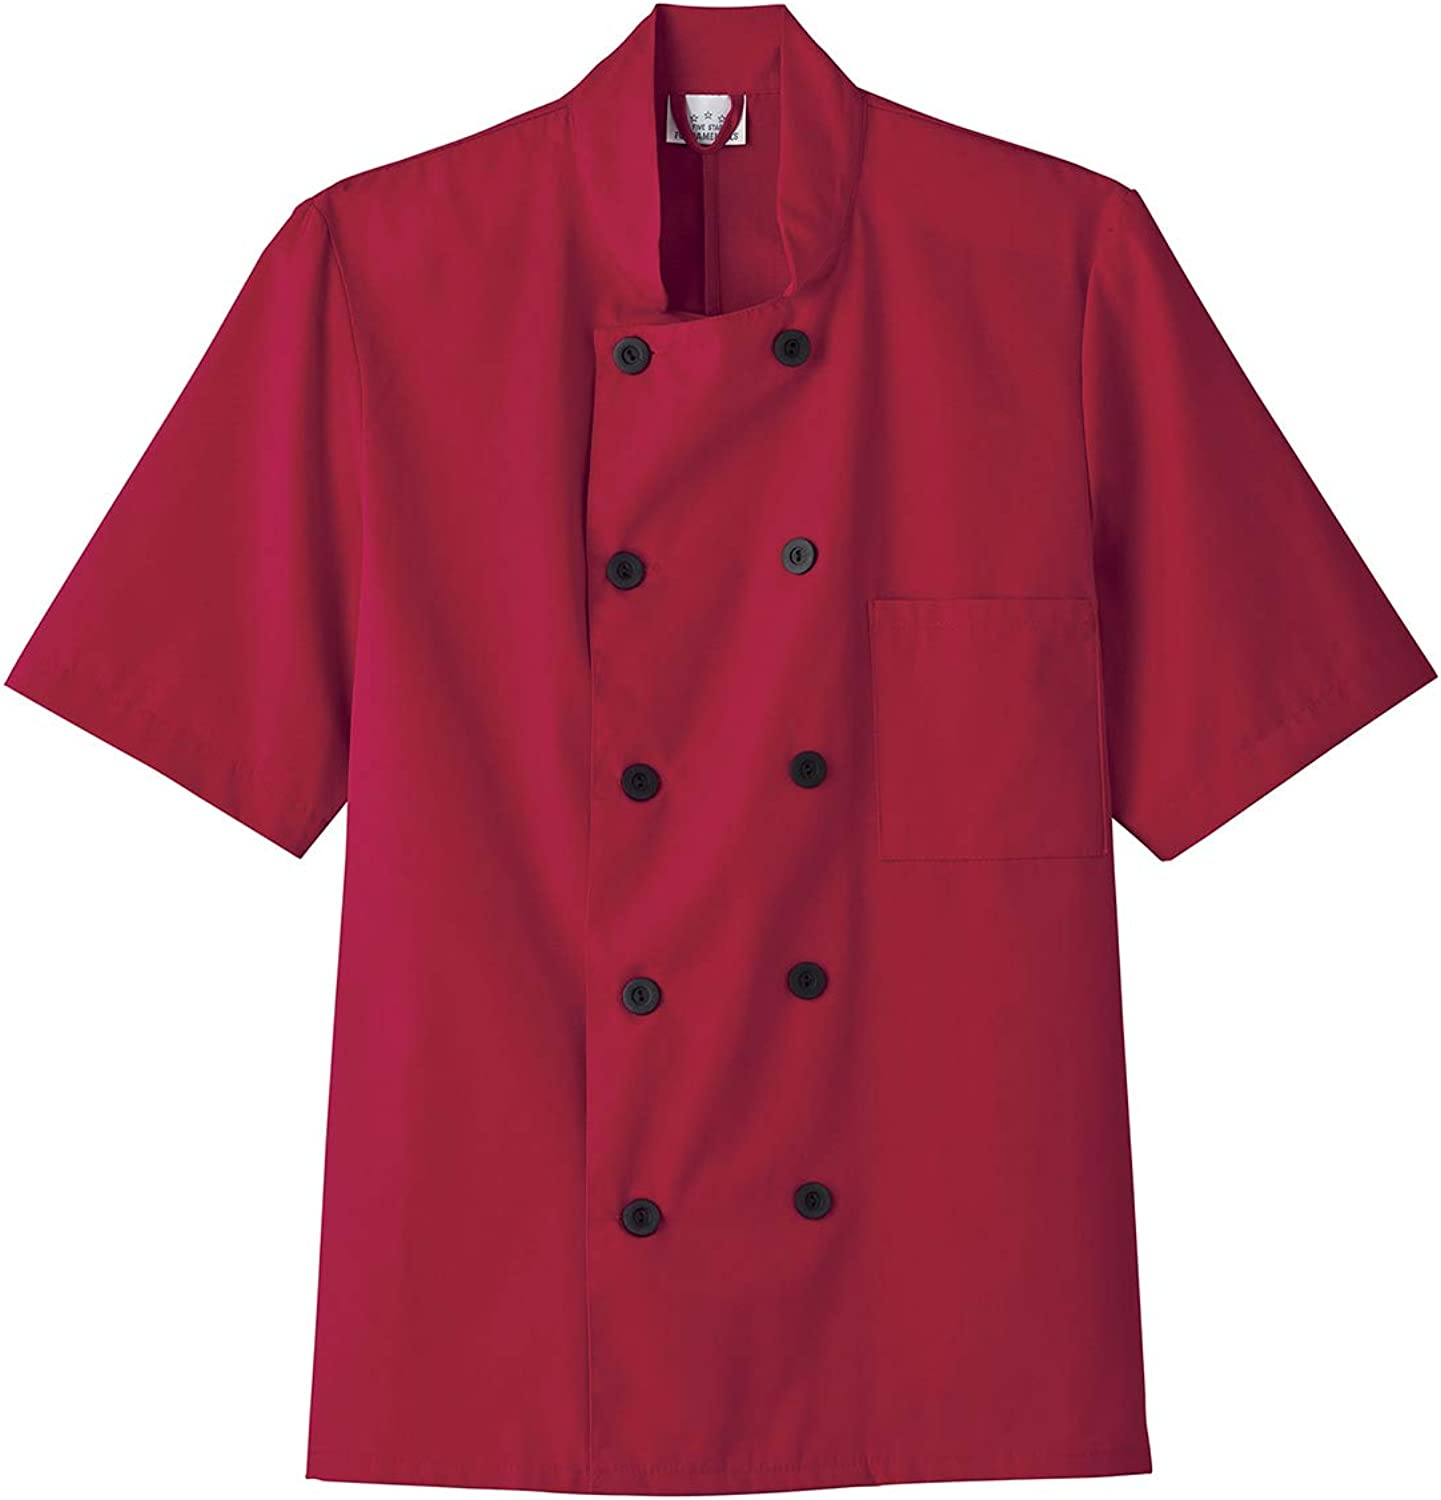 Five Star Rapid rise 18001 18025 Unisex Short Chef Max 50% OFF Red Coat 3XL Sleeve